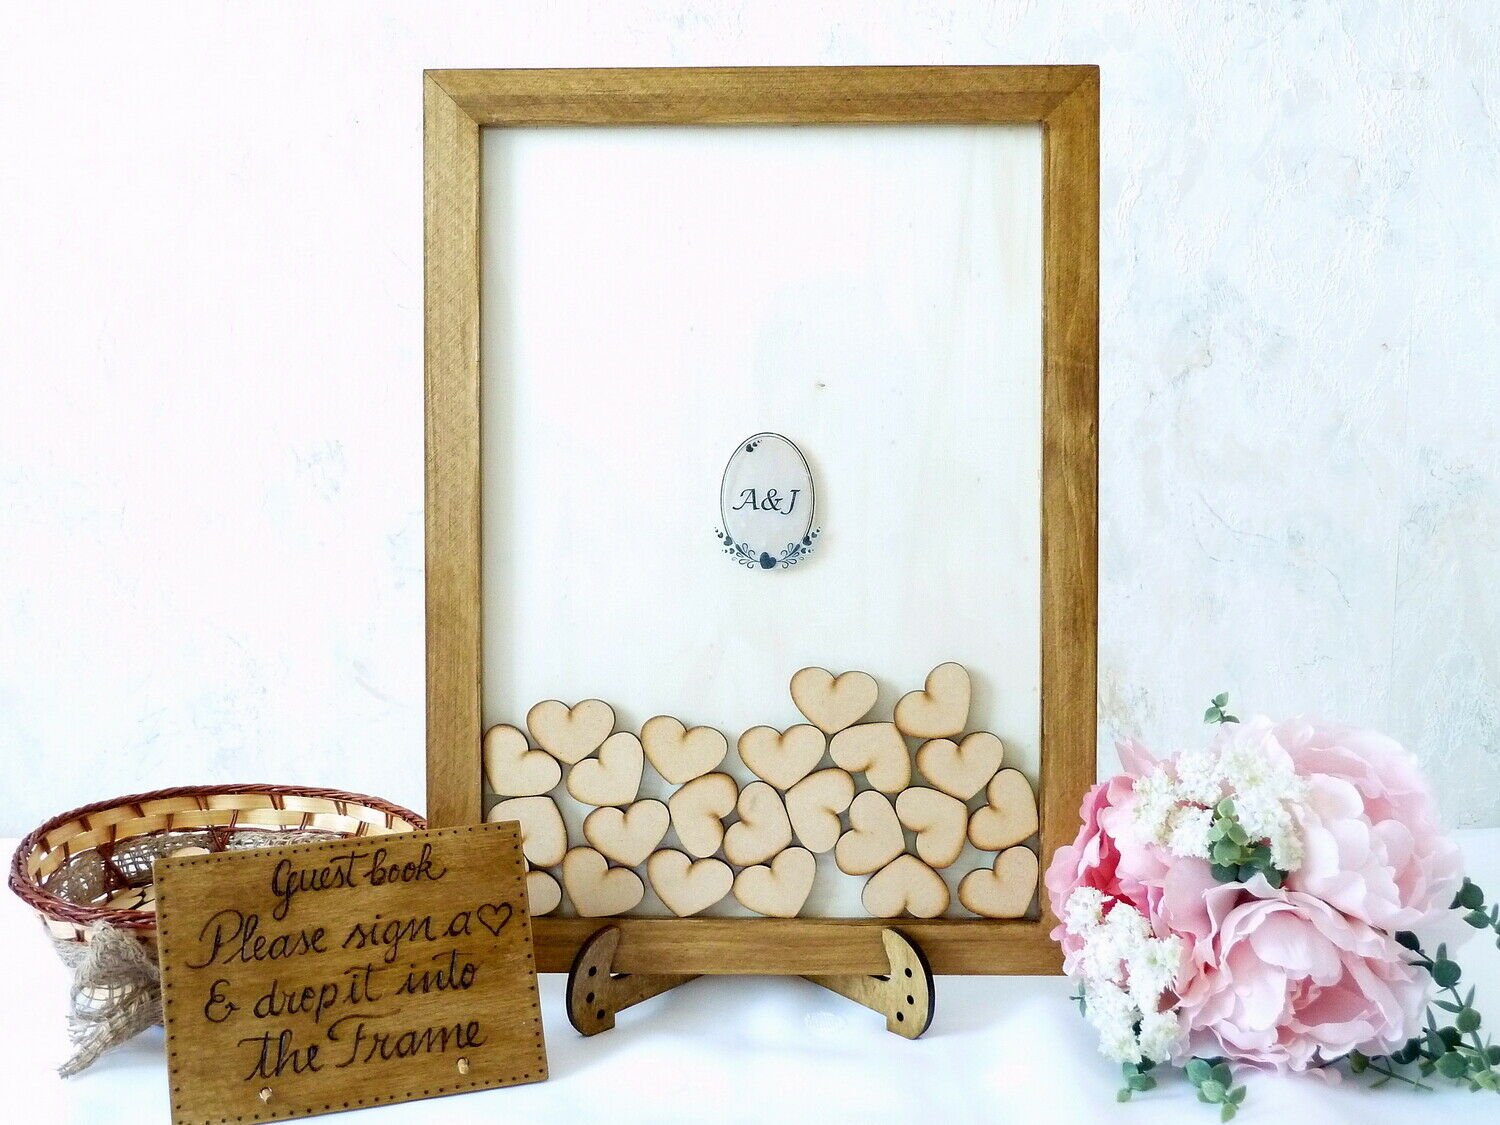 Wedding Drop Box Guest Book Alternative. Personalised Rustic Wooden Guest Book